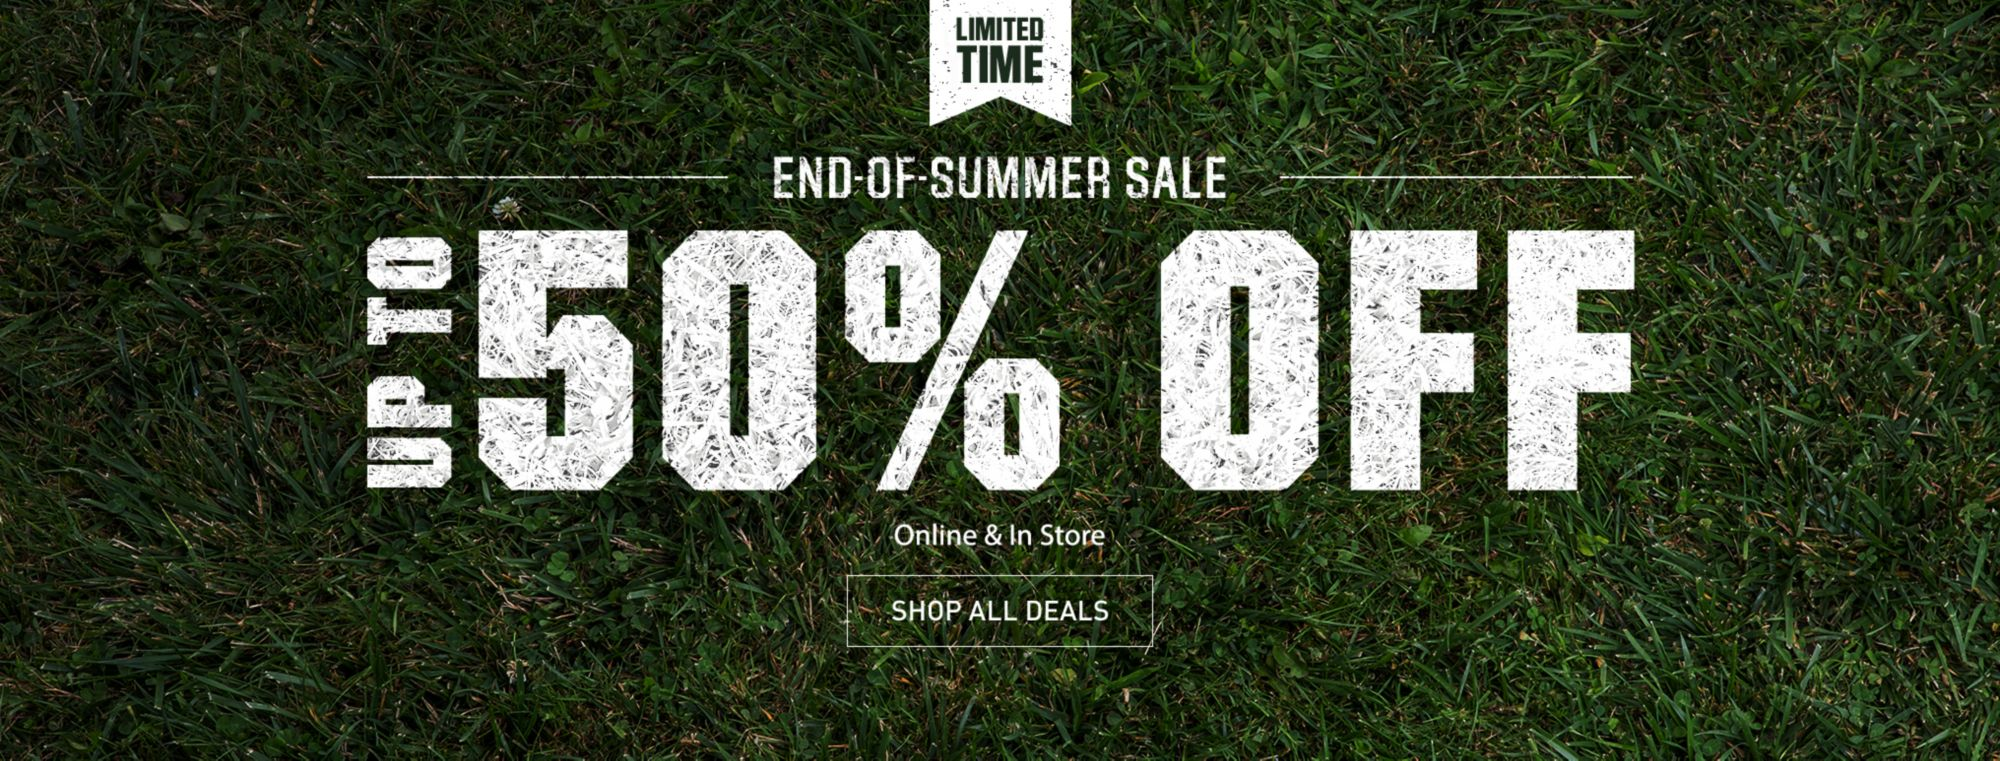 Limited Time End of Summer Sale - Up to 50% Off - Online & In Store - Shop All Deals